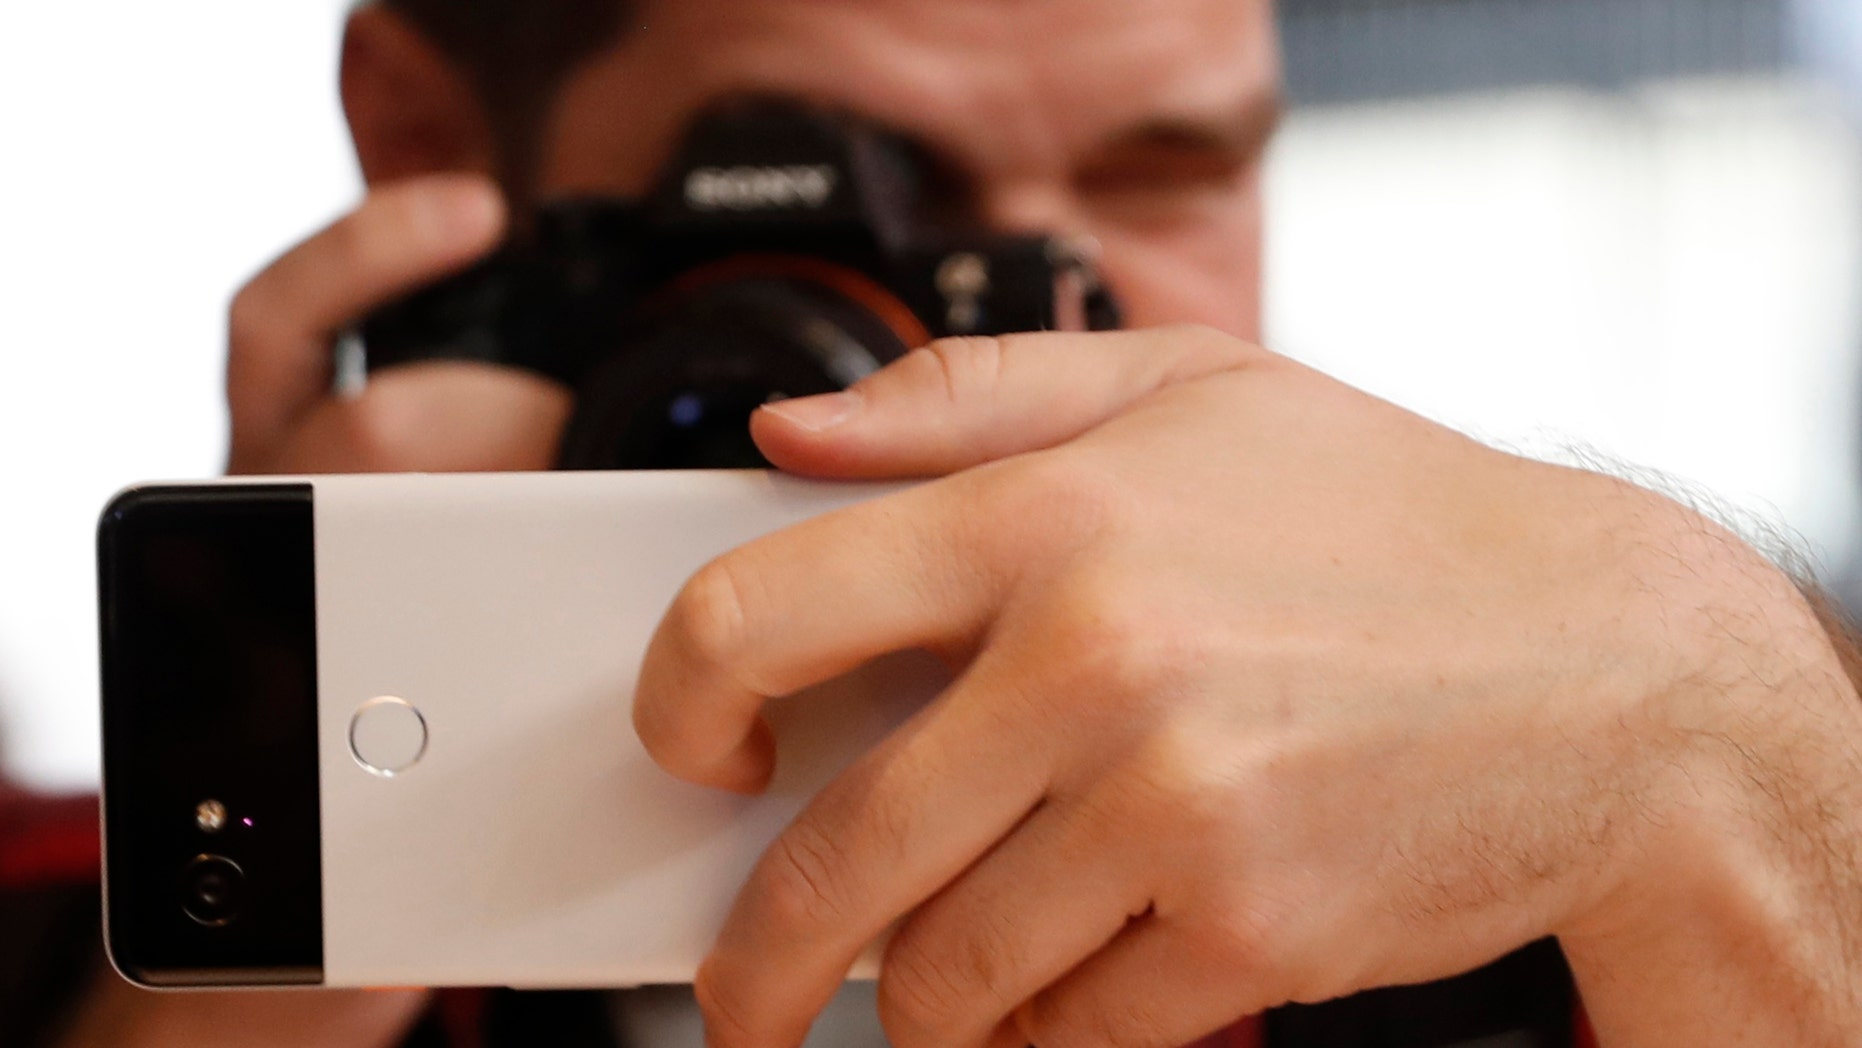 File photo: A man takes a photo of a Google Pixel 2 phone during a launch event in San Francisco, California, U.S. October 4, 2017. REUTERS/Stephen Lam